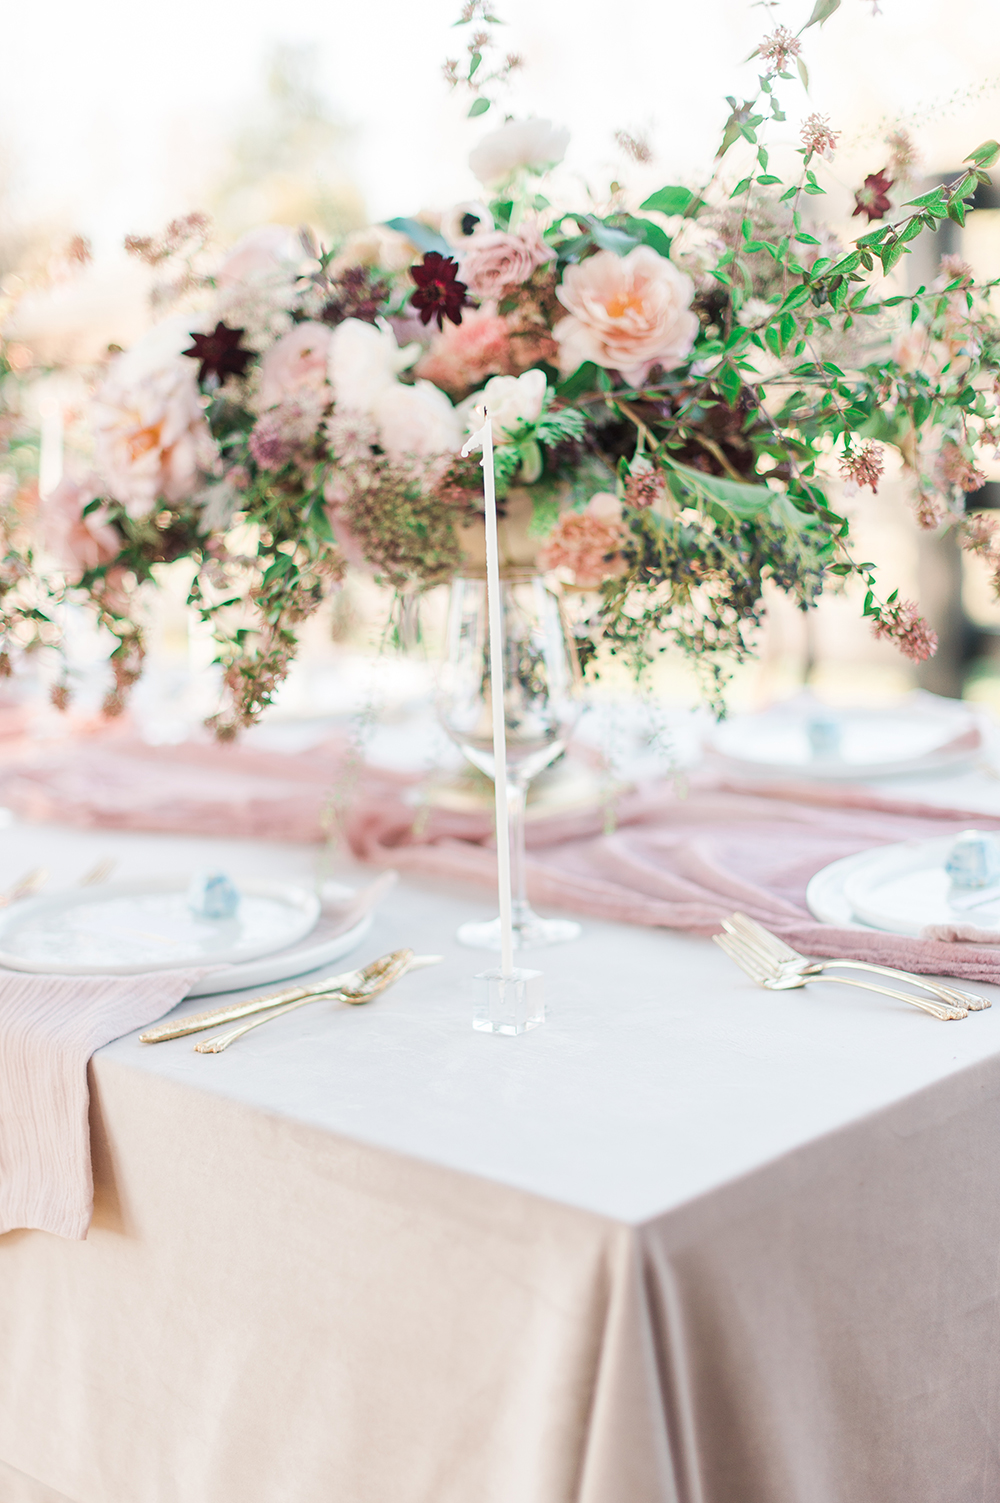 wedding tables - photo by Jenny B Photos http://ruffledblog.com/ethereal-wedding-inspiration-with-vintage-accents